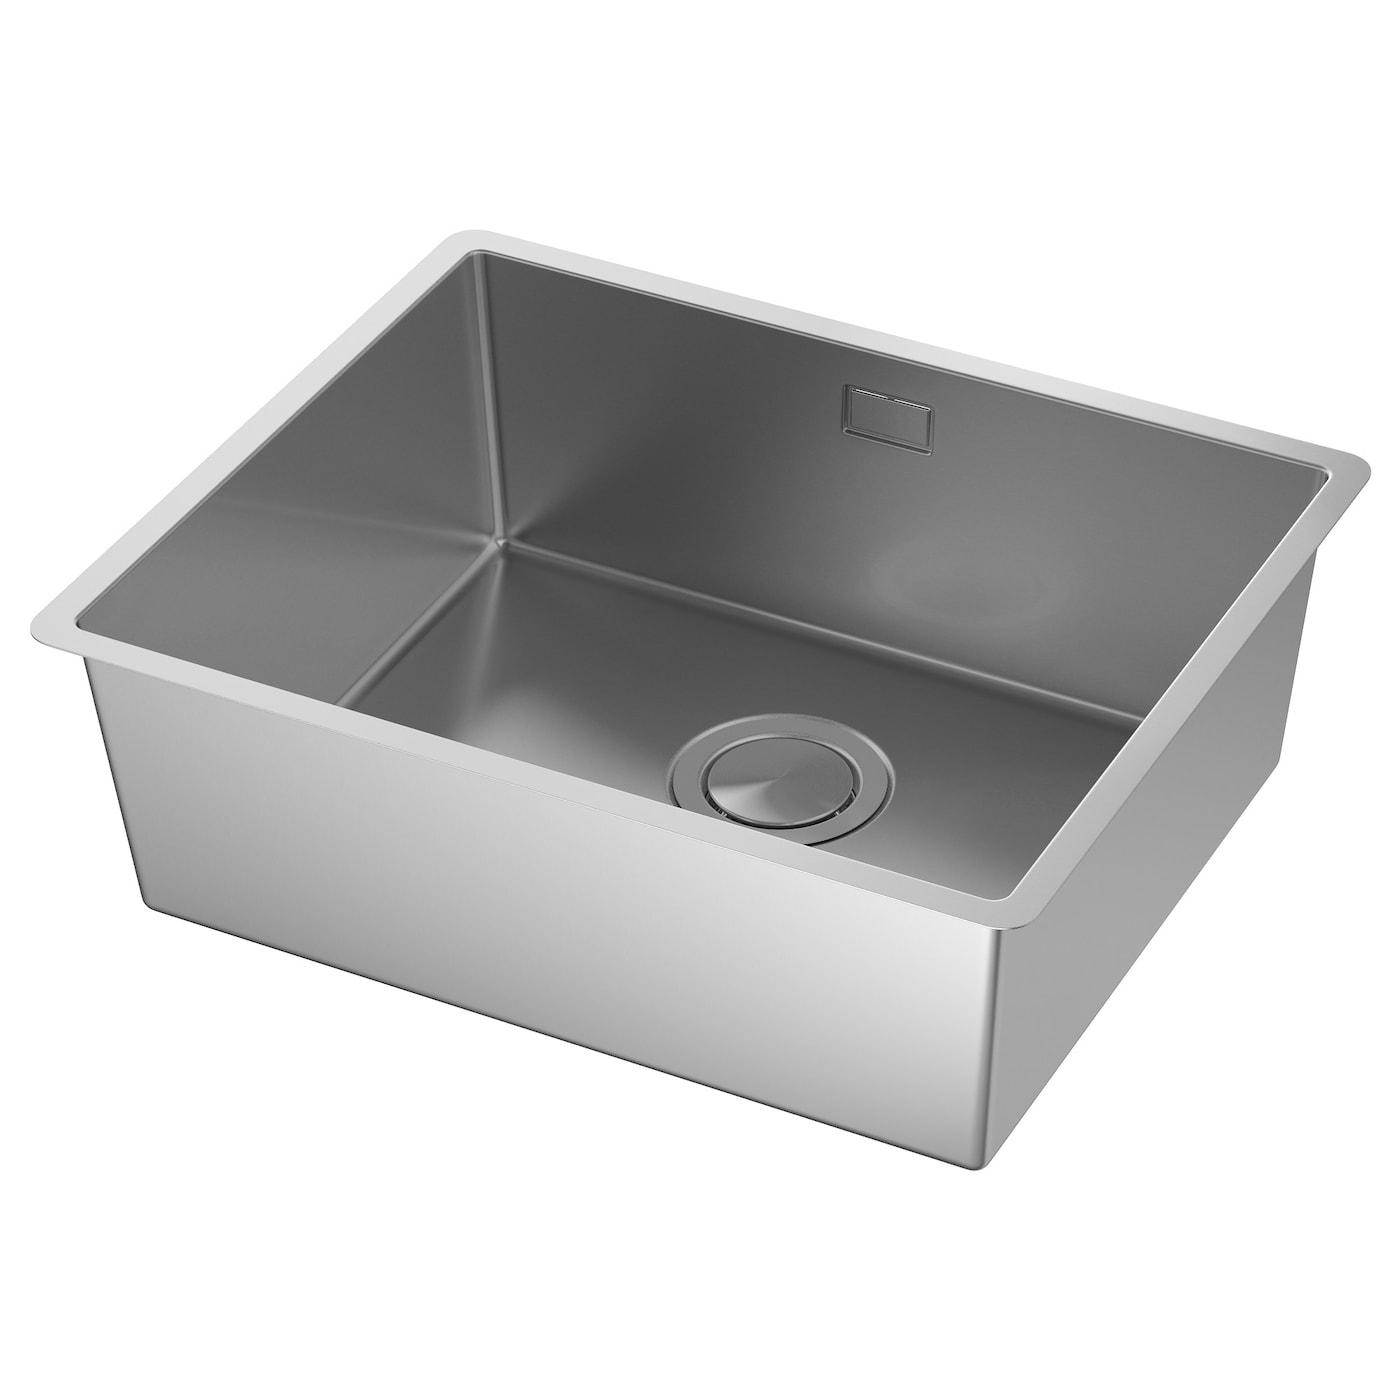 Ikea NorrsjÖn Inset Sink 1 Bowl 25 Year Guarantee Read About The Terms In